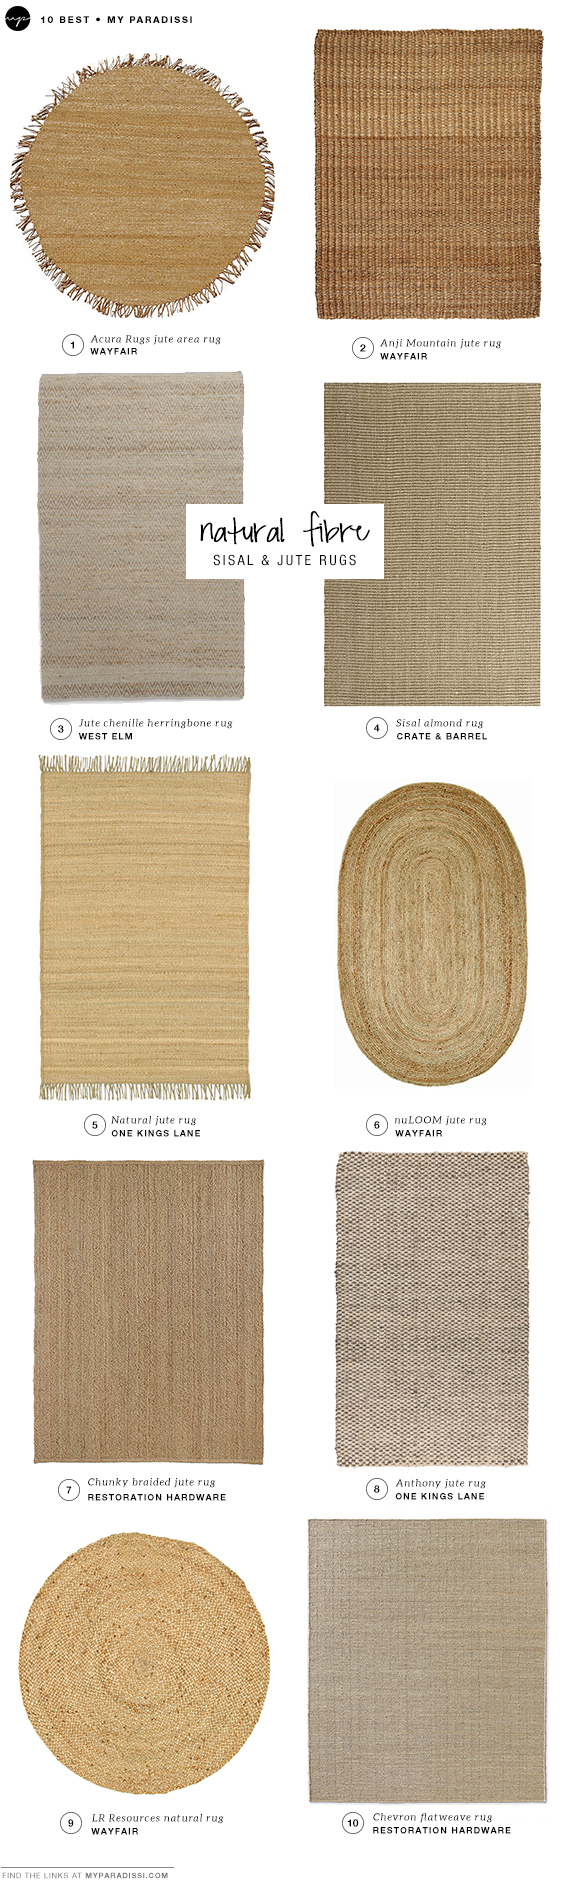 DECOR TREND: Sisal and jute rugs shopping picks